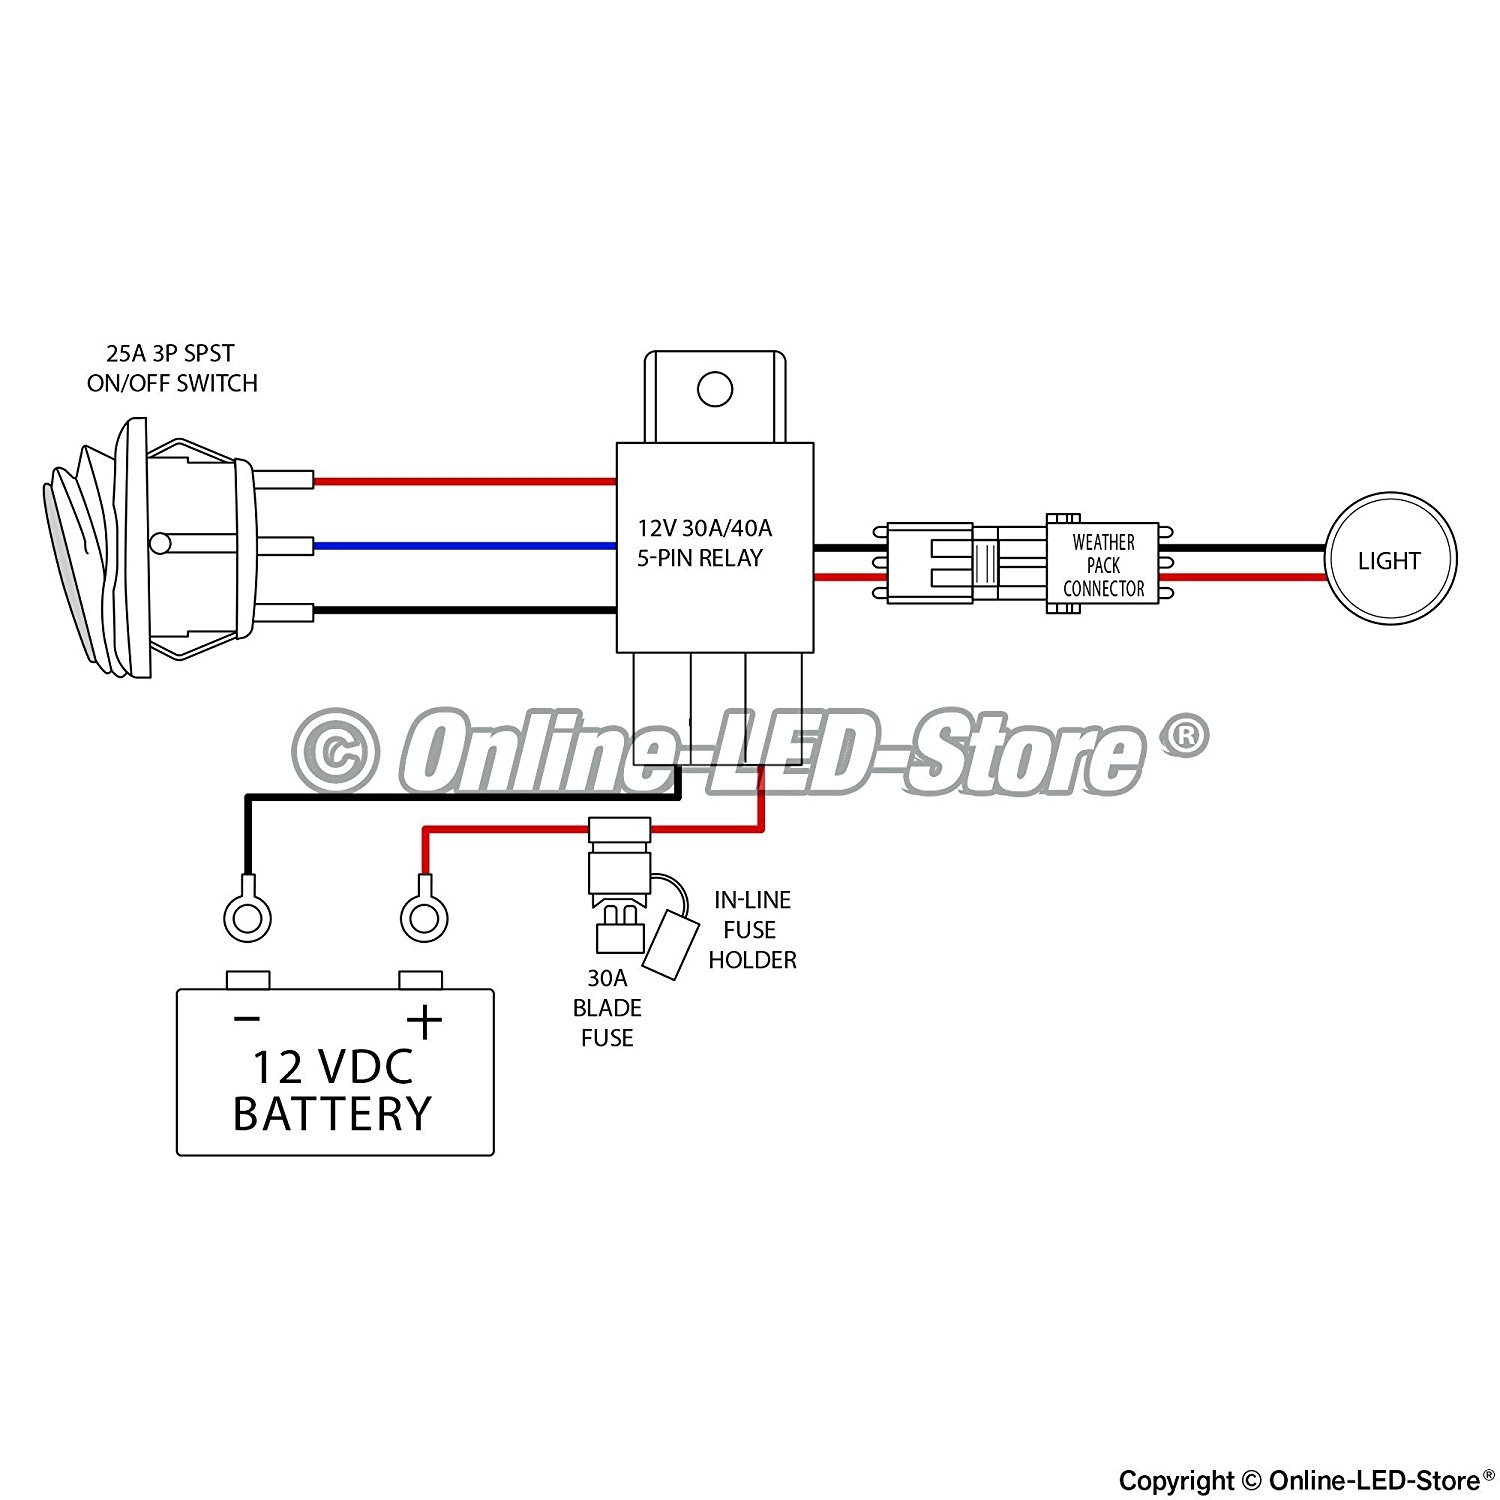 recon tailgate light bar wiring diagram - 40 amp relay wiring diagram  elegant cute mictuning wiring